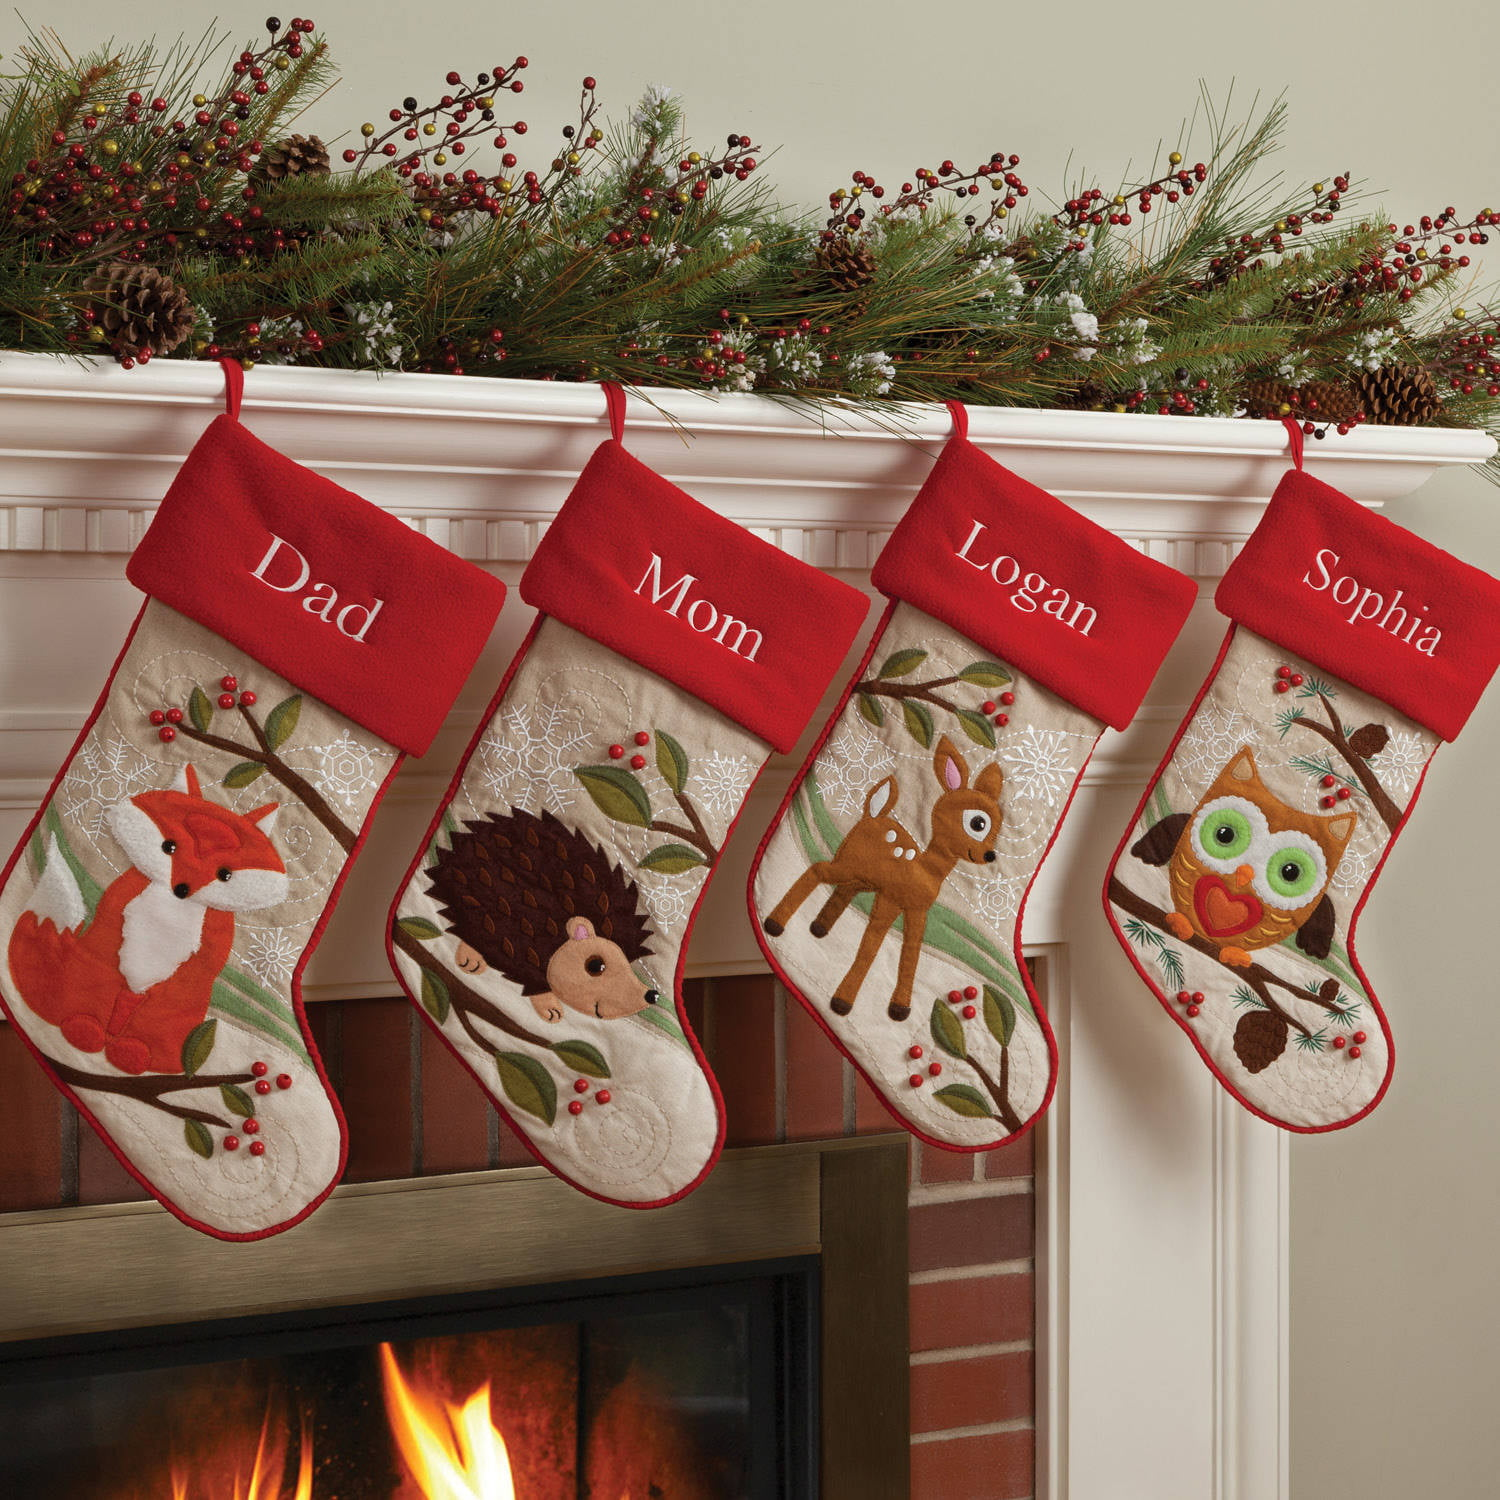 Christmas Stocking Personalized.Personalized Forest Friend Christmas Stocking Available In Different Animals